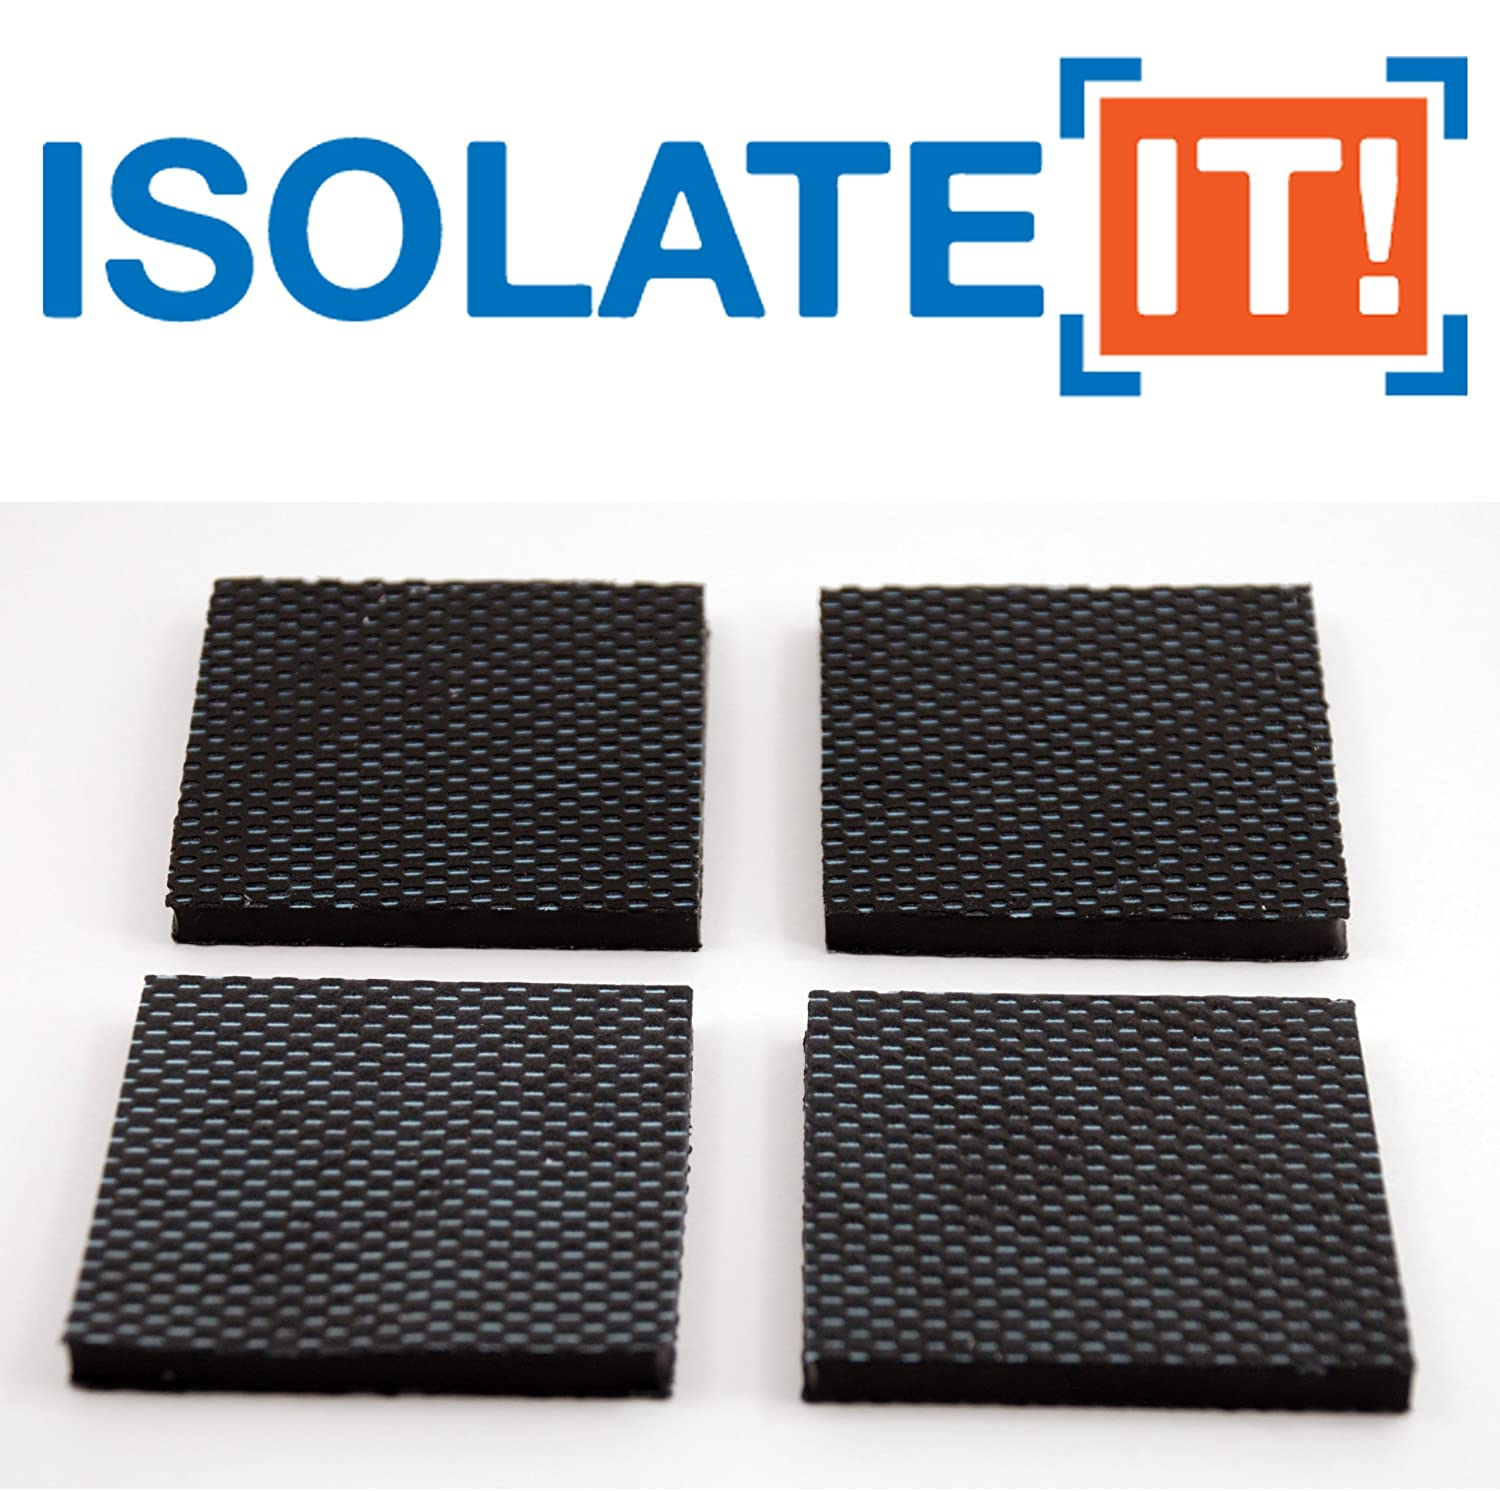 Isolate It: Sorbothane Vibration Isolation Heavy Duty Square Pad (2.5 x 2.5 x 1/4 Thick) 50 Duro - 4 Pack Isolate It! 0510425-50